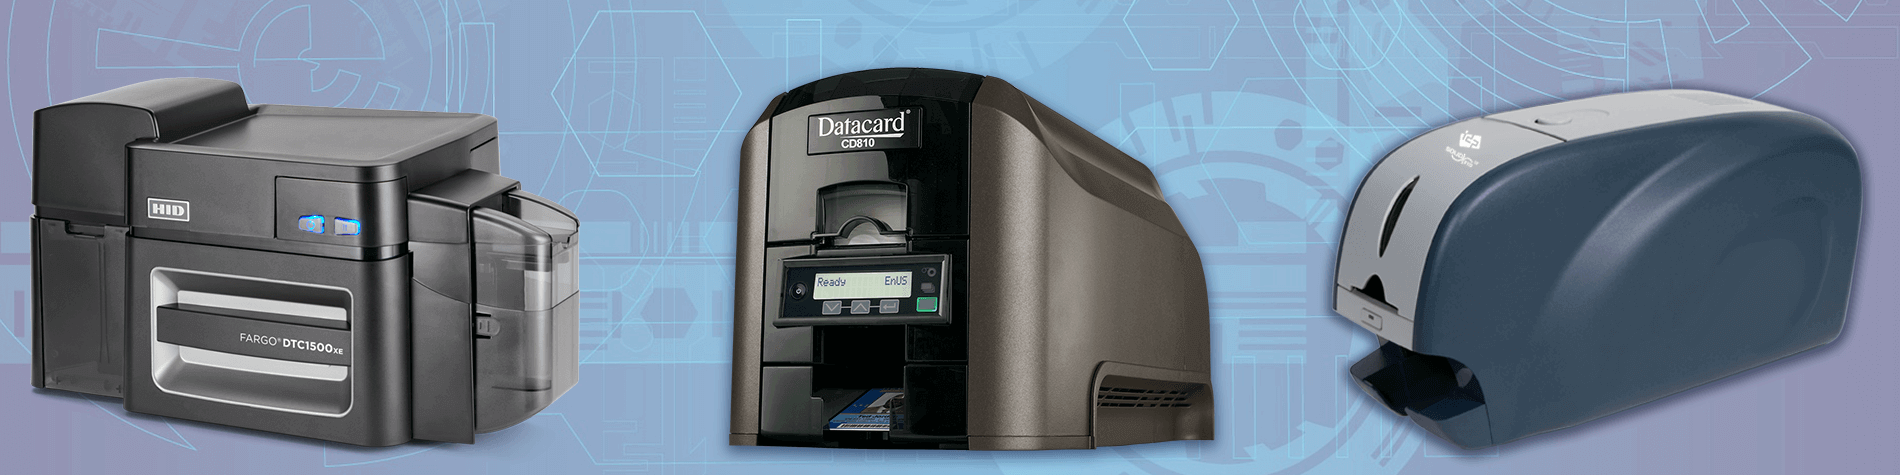 ID Card Printer Technology Evolution